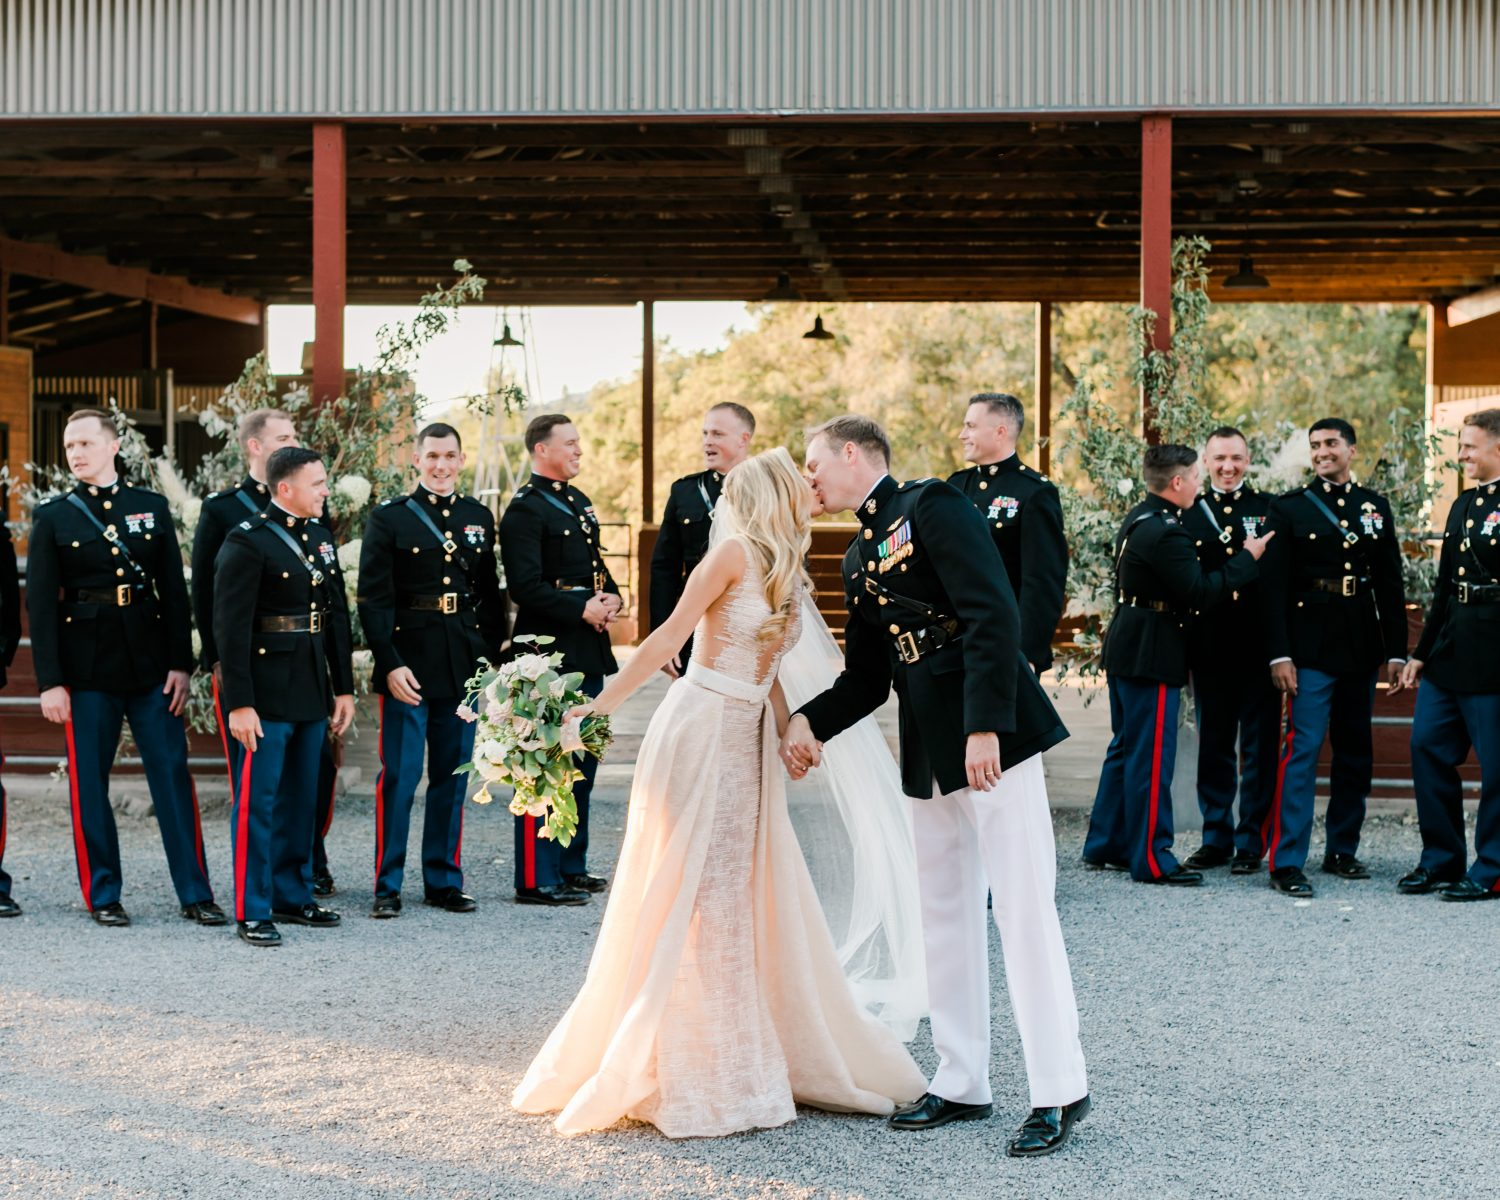 Exclusive: Miss America Kira Kazantsev Shares Photos From Her Russian-American Wedding